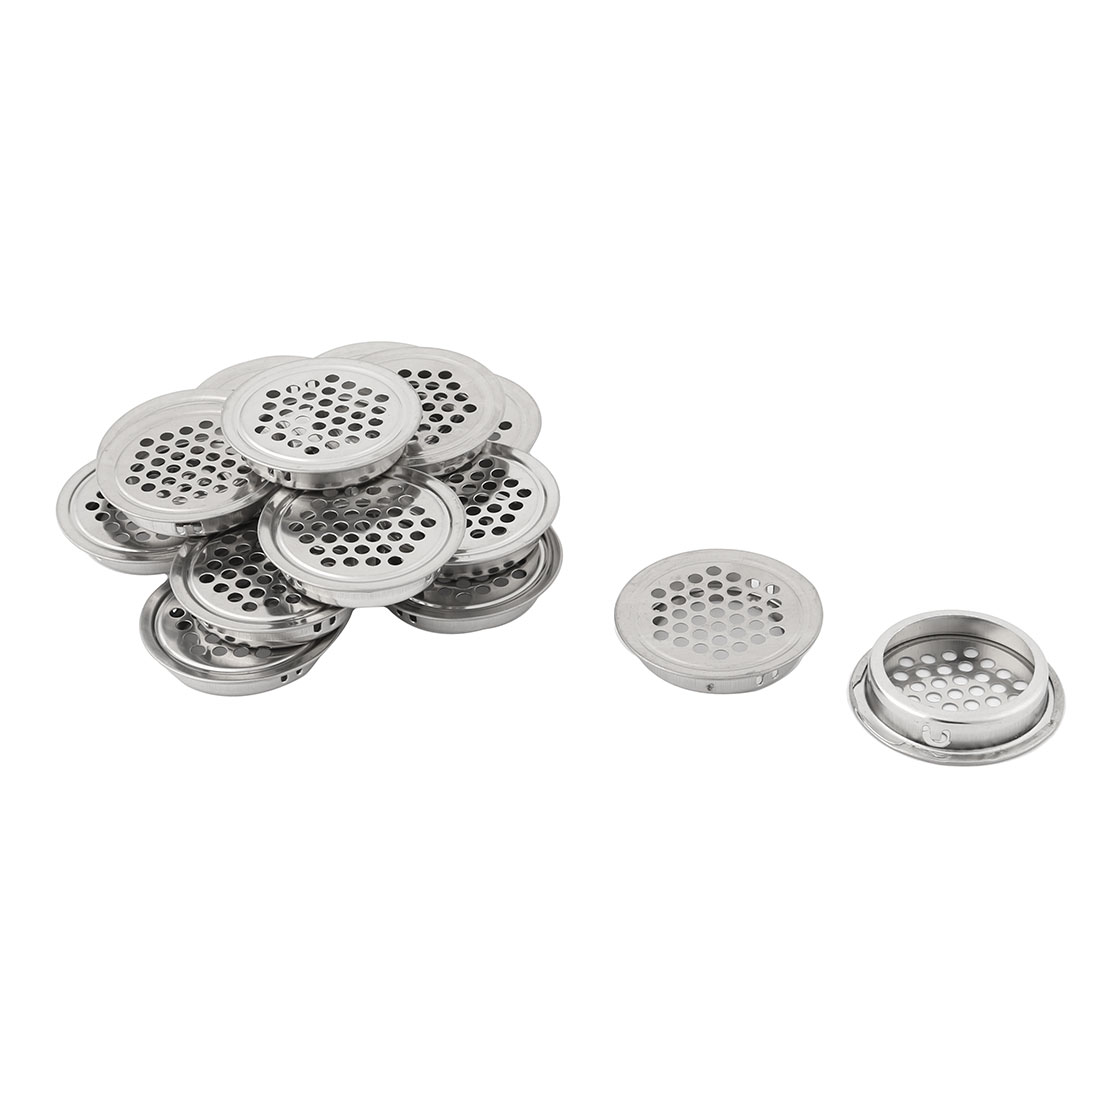 Household Metal Round Perforated Mesh Air Vent Cover 35mm Dia 15 Pcs